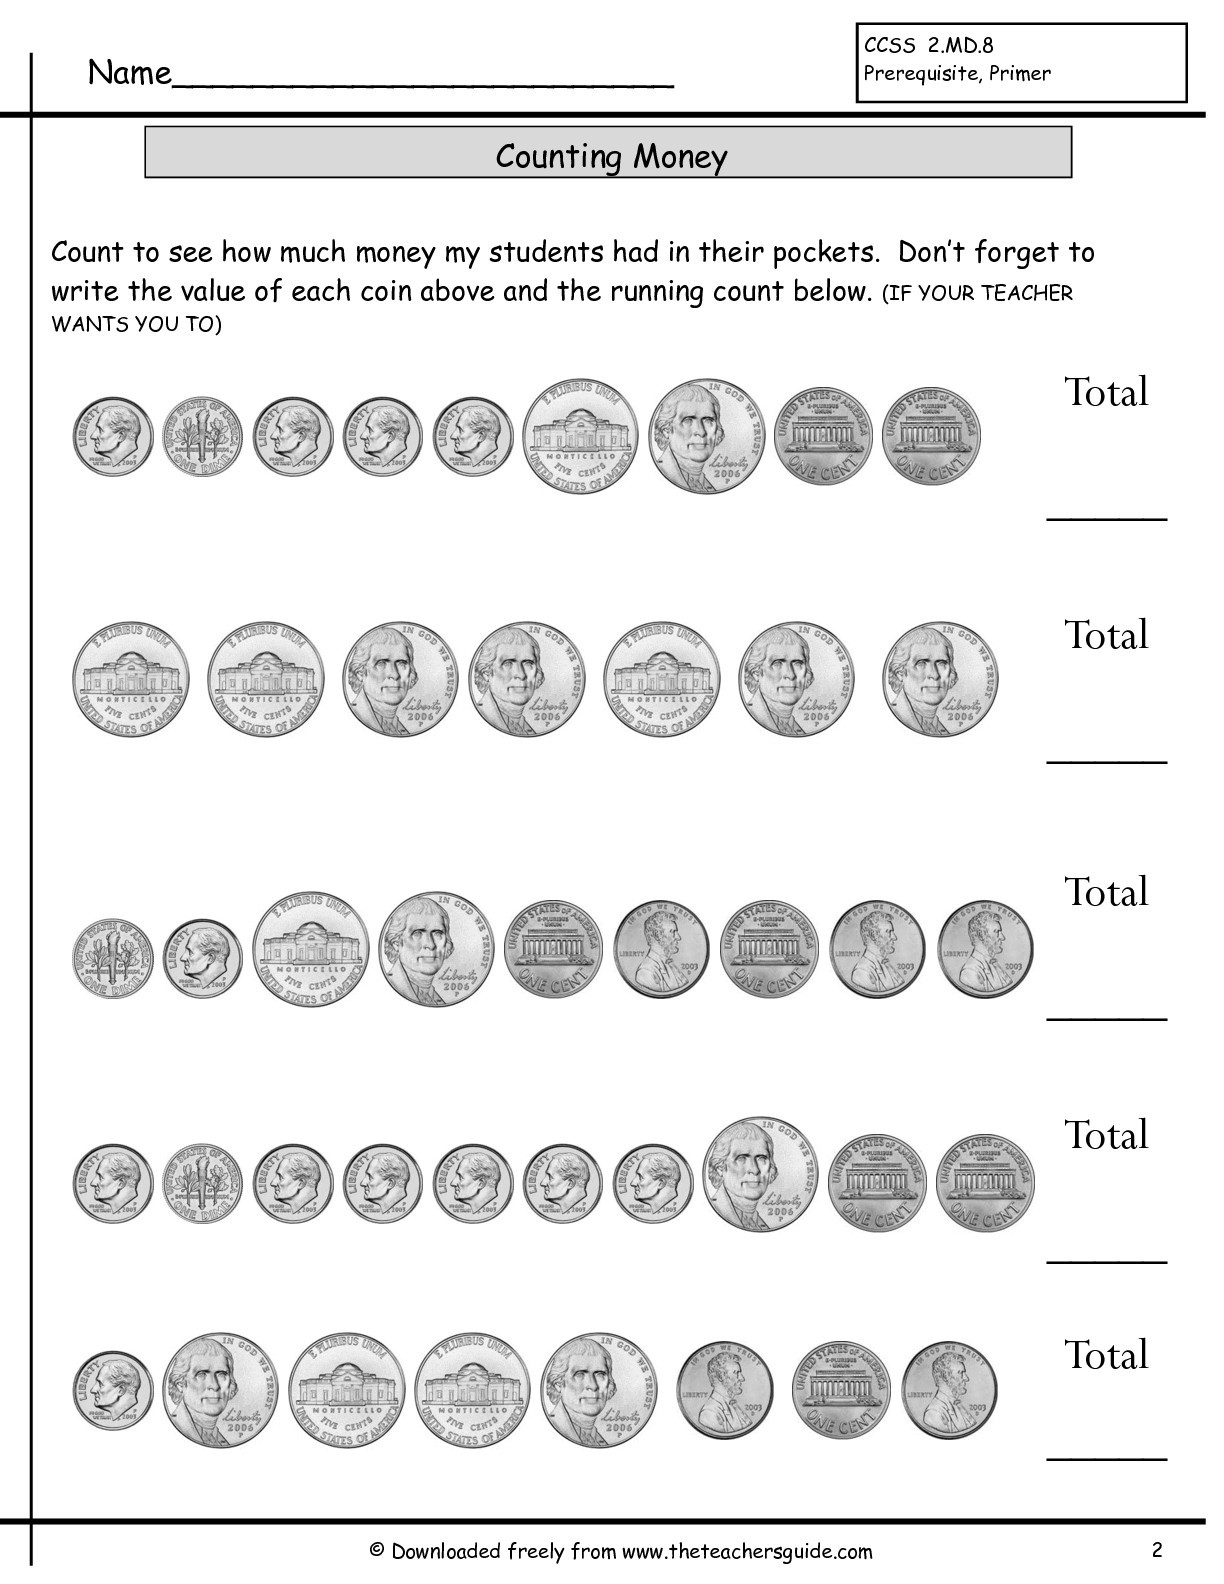 Counting Coins Worksheets 2nd Grade Counting Money T2 Lessons Tes Teach